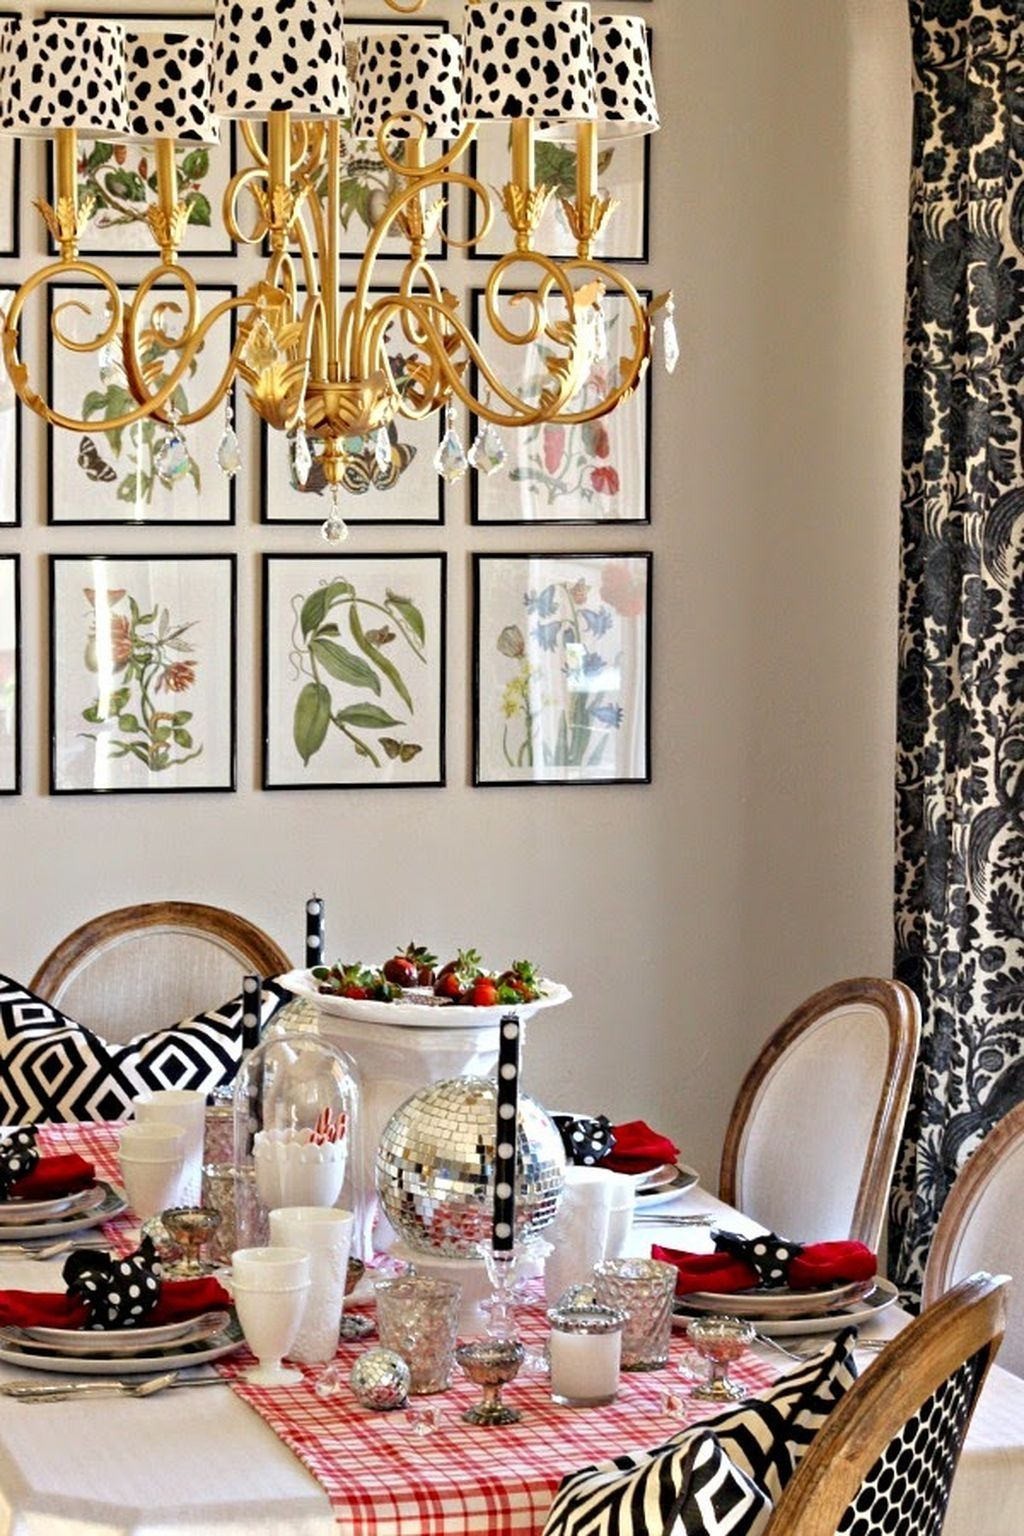 Romantic Dining Room: 50 Romantic Dining Room Decorating Ideas For Valentine's